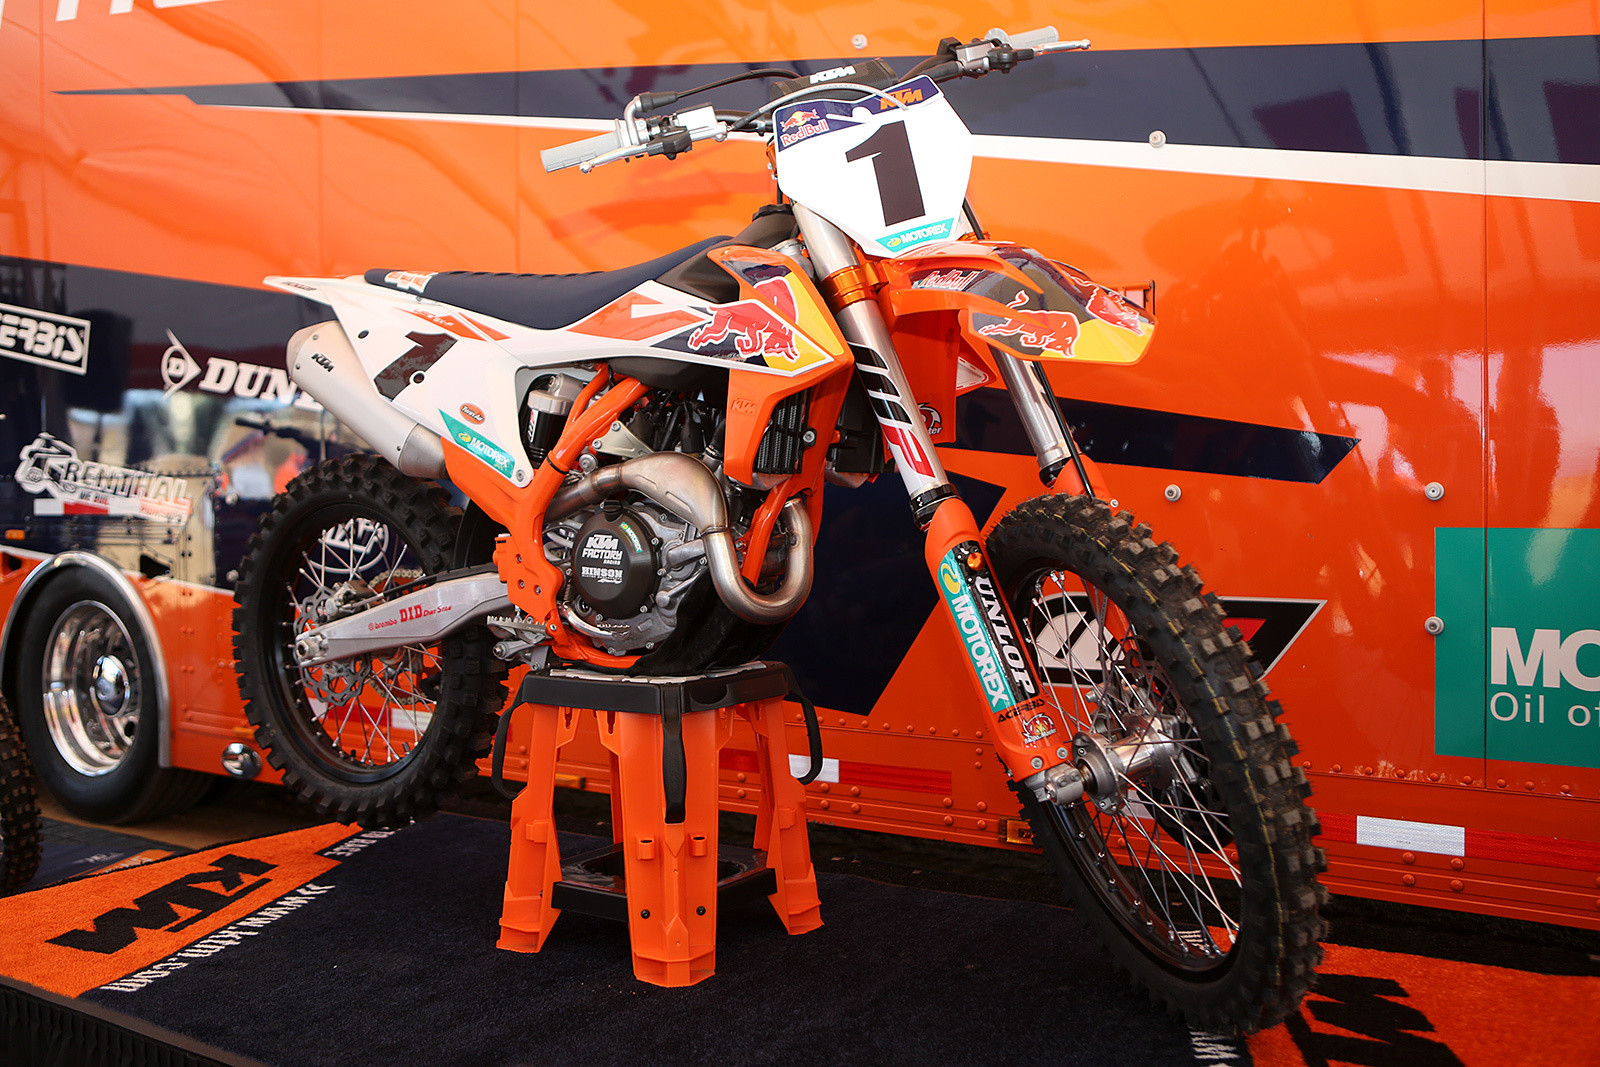 """The new 2018 KTM 450 SX-F Factory Edition. Besides the obious differences in plastic and the exhaust, you can check out more on it here. <a href=""""http://www.vitalmx.com/features/First-Look-2018-KTM-450-SX-F-Factory-Edition,5676"""" target=""""_blank"""">First Look: 2018 KTM 450 SX-F Factory Edition</a><br><a href=""""http://www.vitalmx.com/videos/features/Walk-Around-Tech-Brief-on-the-2018-KTM-450-SX-F-Factory-Edition,16340/ML512,13480"""" target=""""_blank"""">Tech Brief on the 2018 KTM 450 SX-F Factory Edition</a>"""